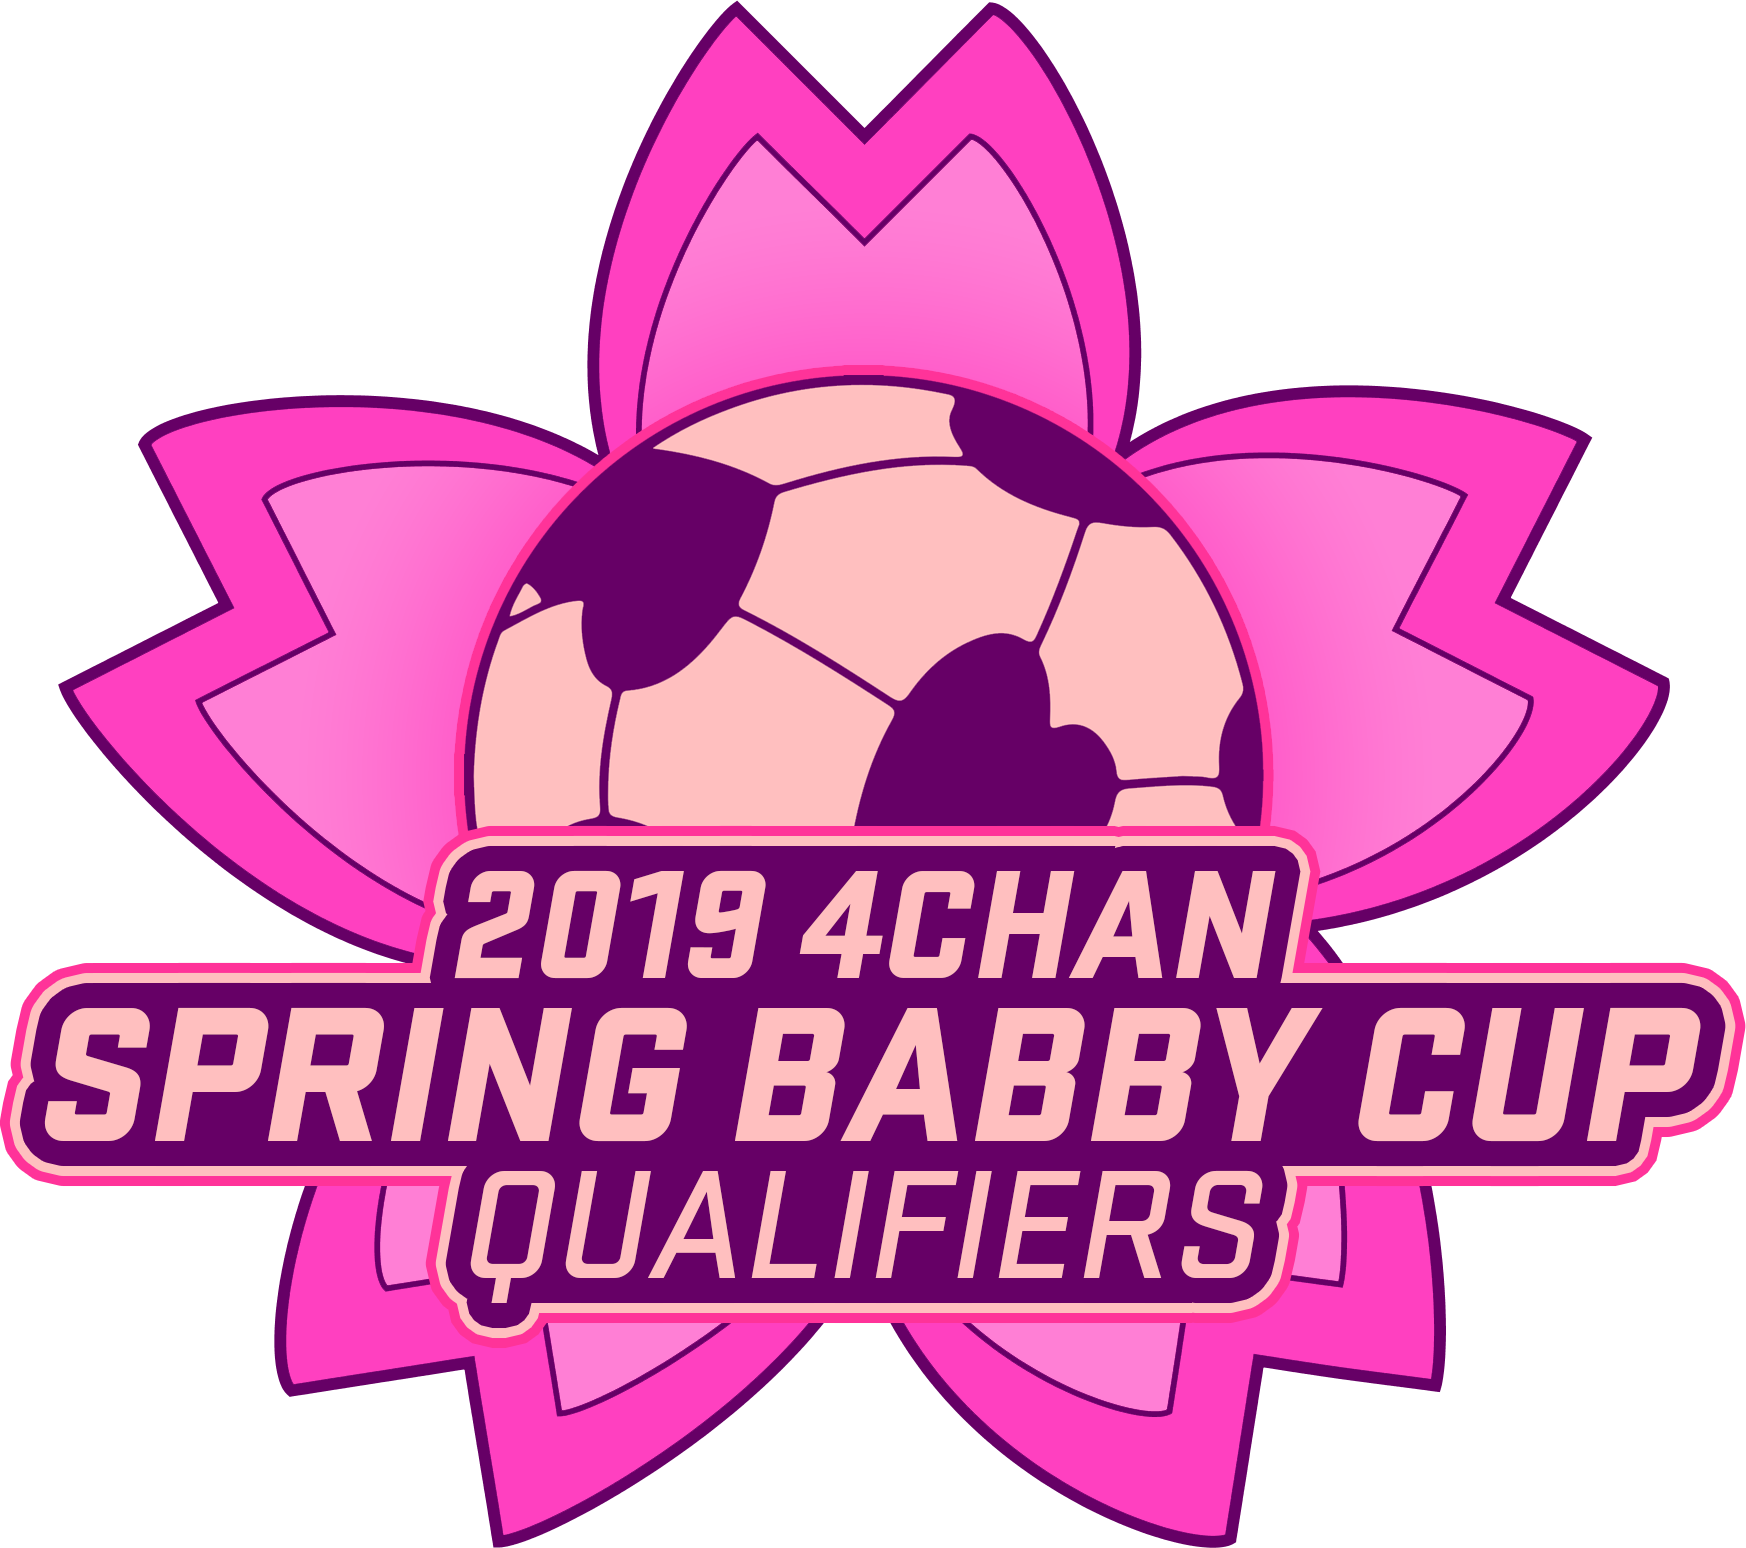 2019 4chan Spring Babby Cup Qualifiers